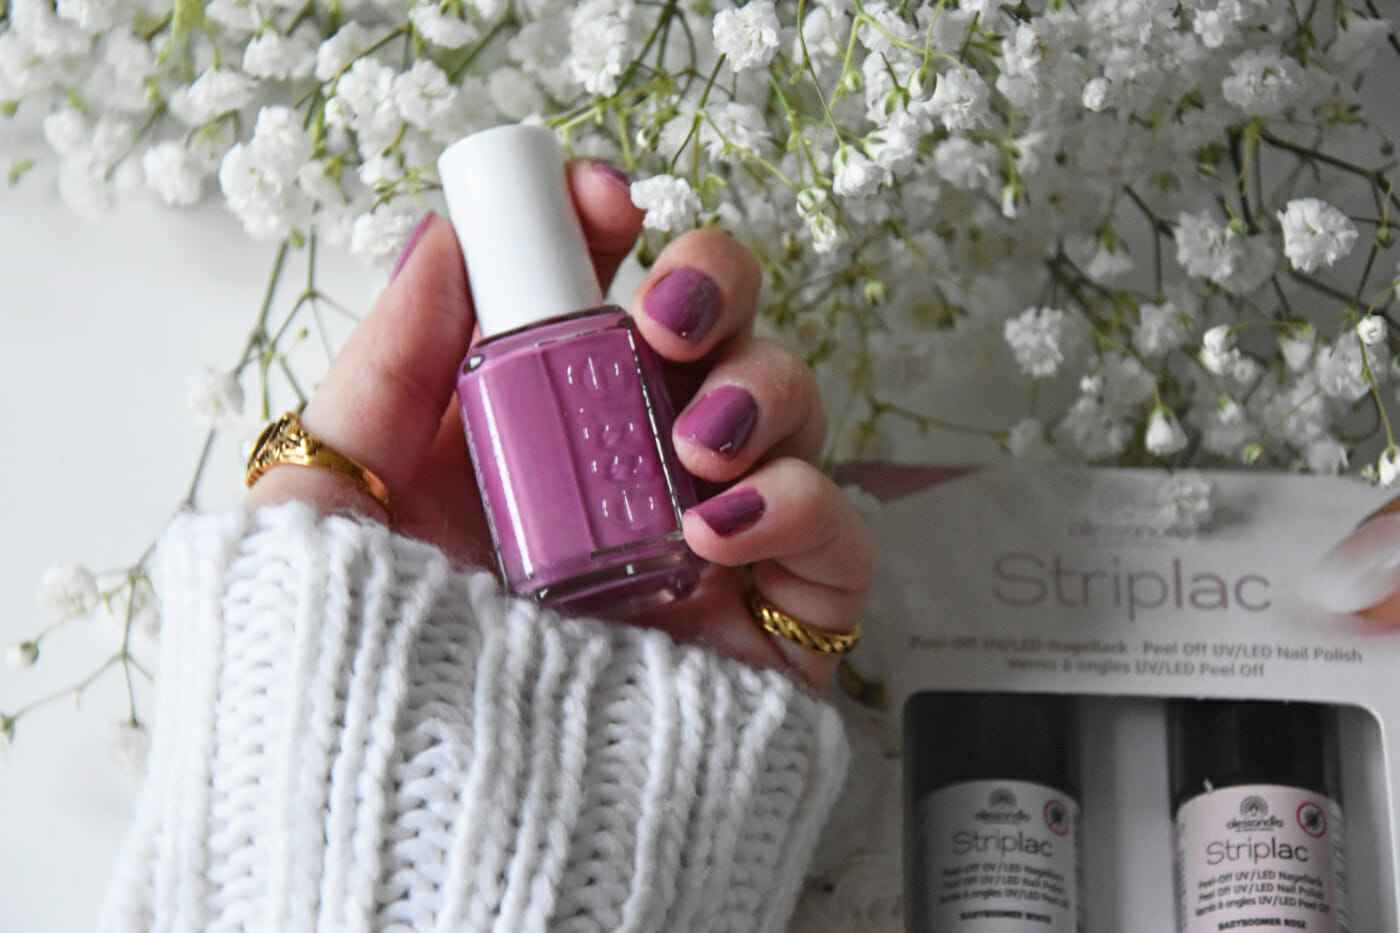 Essie Striplac nail nailpolish